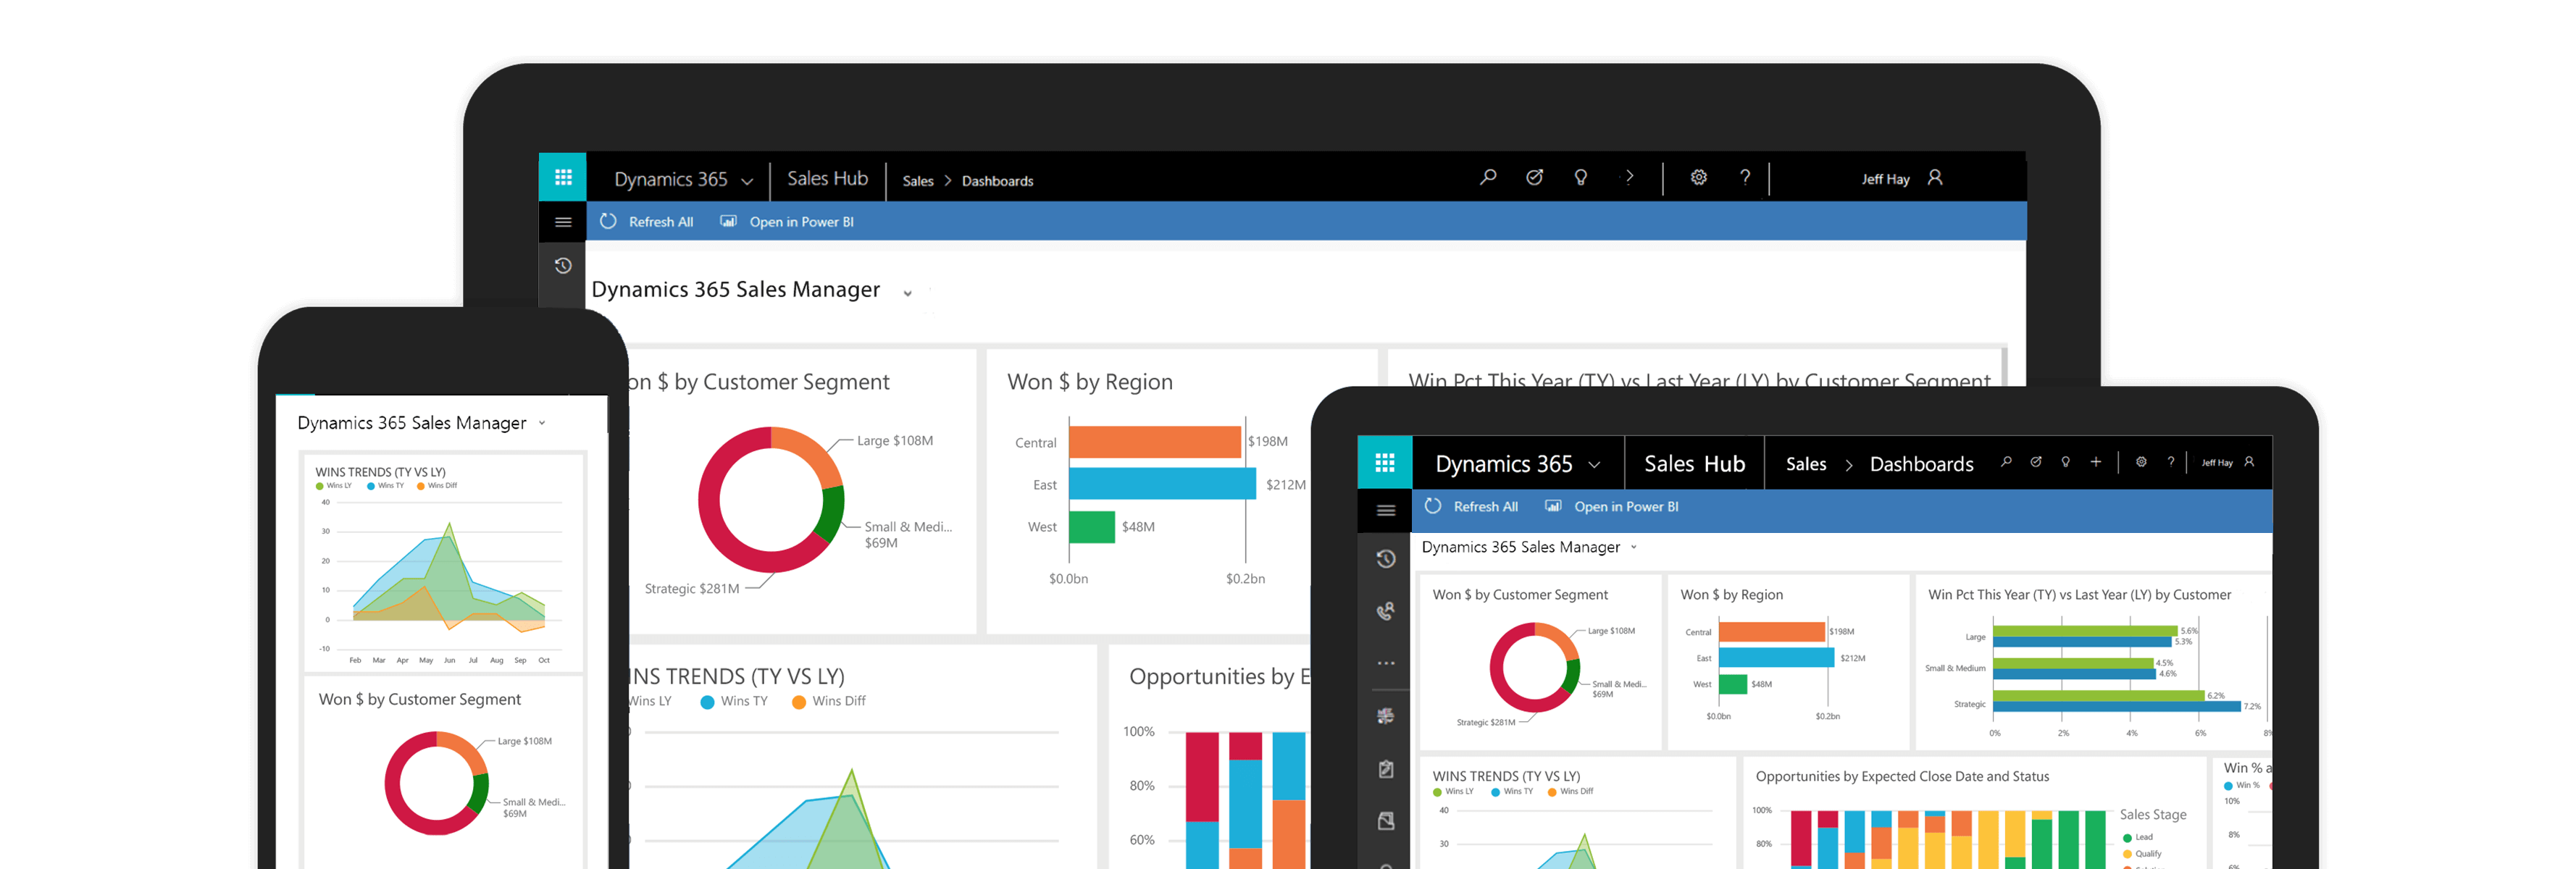 Skjermbilde av Dynamics 365 for Customer Service